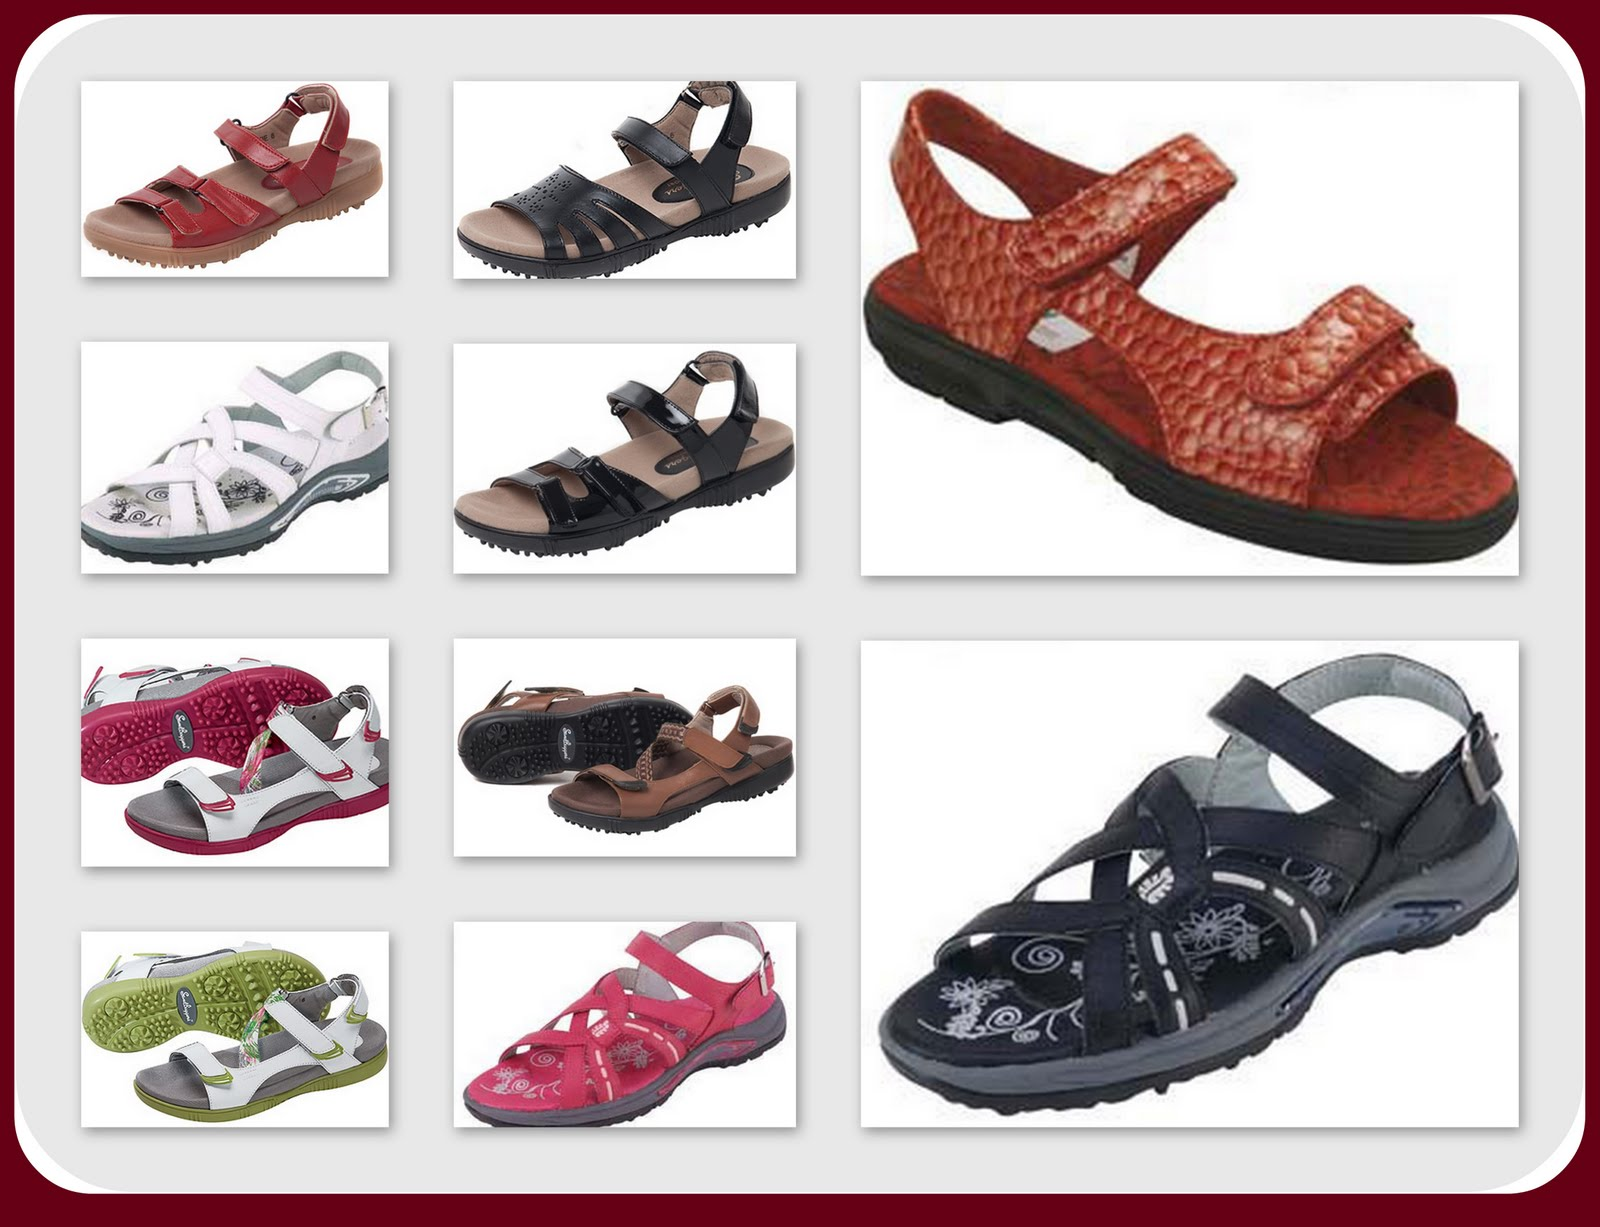 online retailer 904d7 5b20a Summer time and the living is easy …. summer time and the sandals are  here!! Feel the freedom of comfort on hot summer days as you play in  fashionable ...